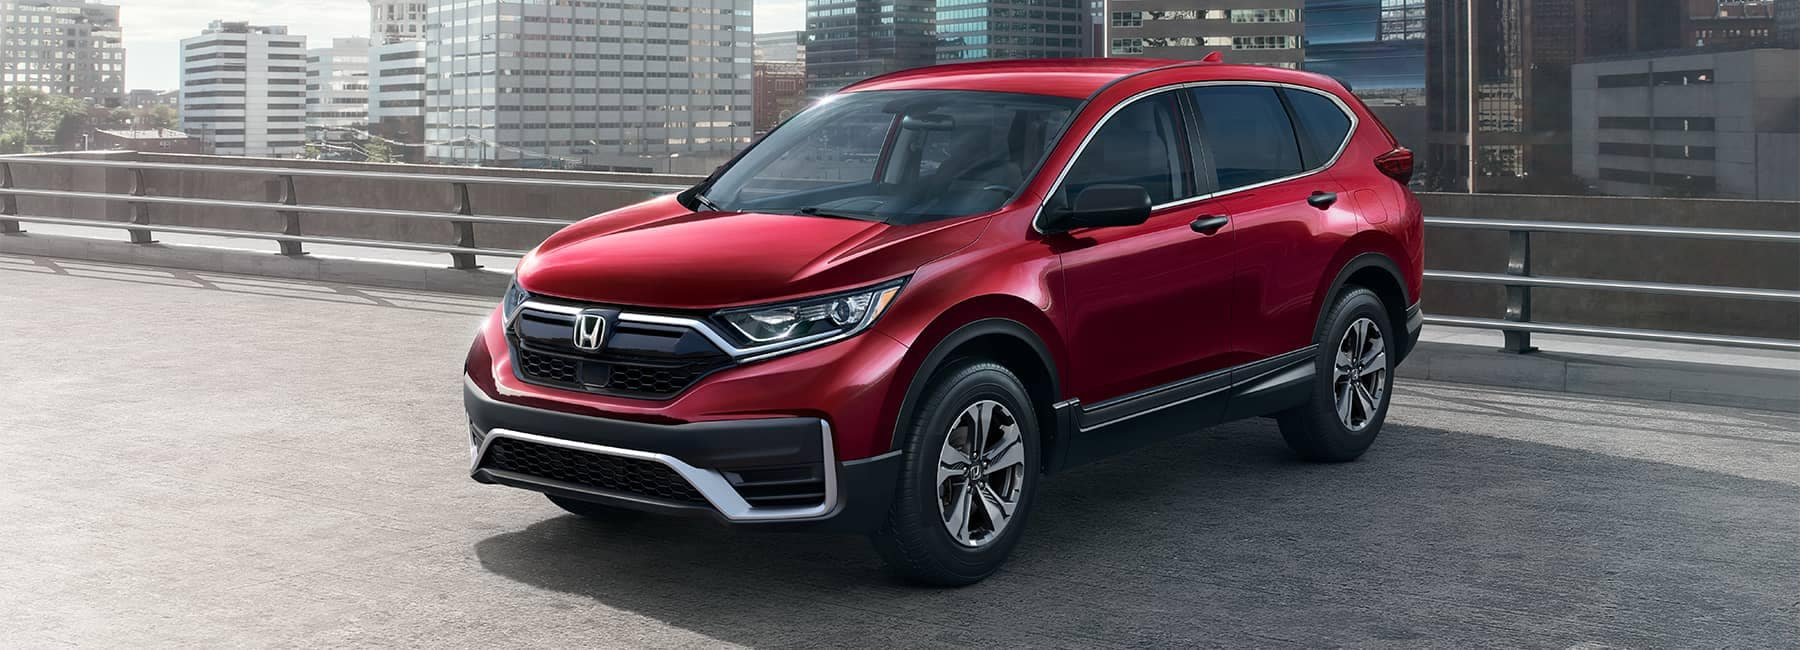 2021 Red Honda CR-V parked on the roof of a parking garage